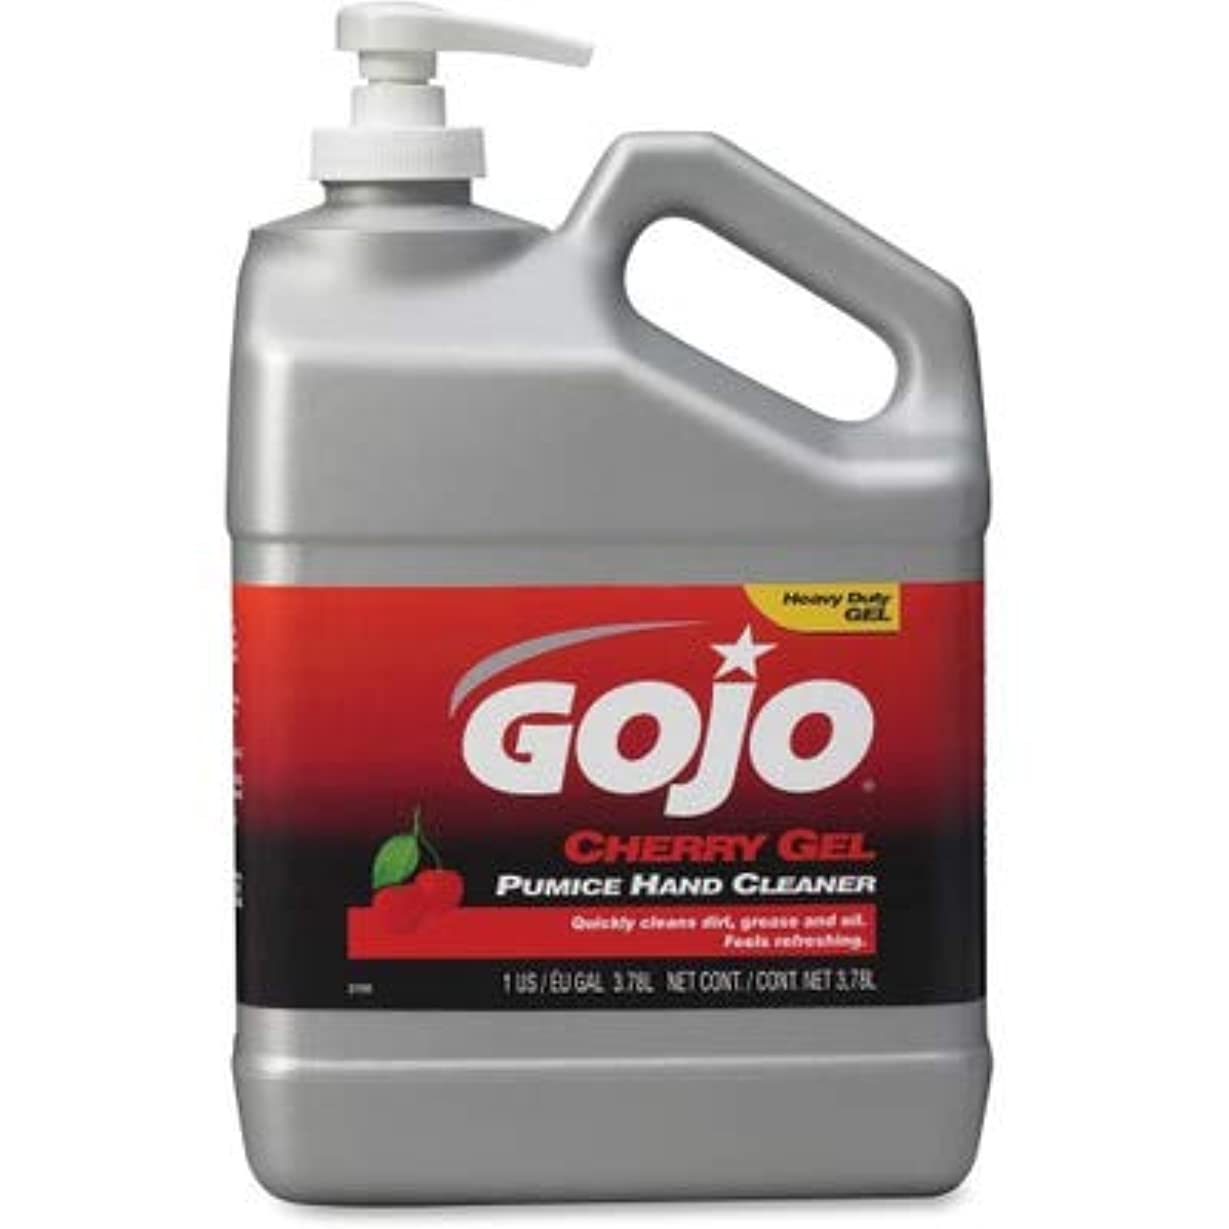 呼吸冷笑する上院Gojo 2358-02 Cherry Gel Pumice Hand Cleaner Cherry 1 gal